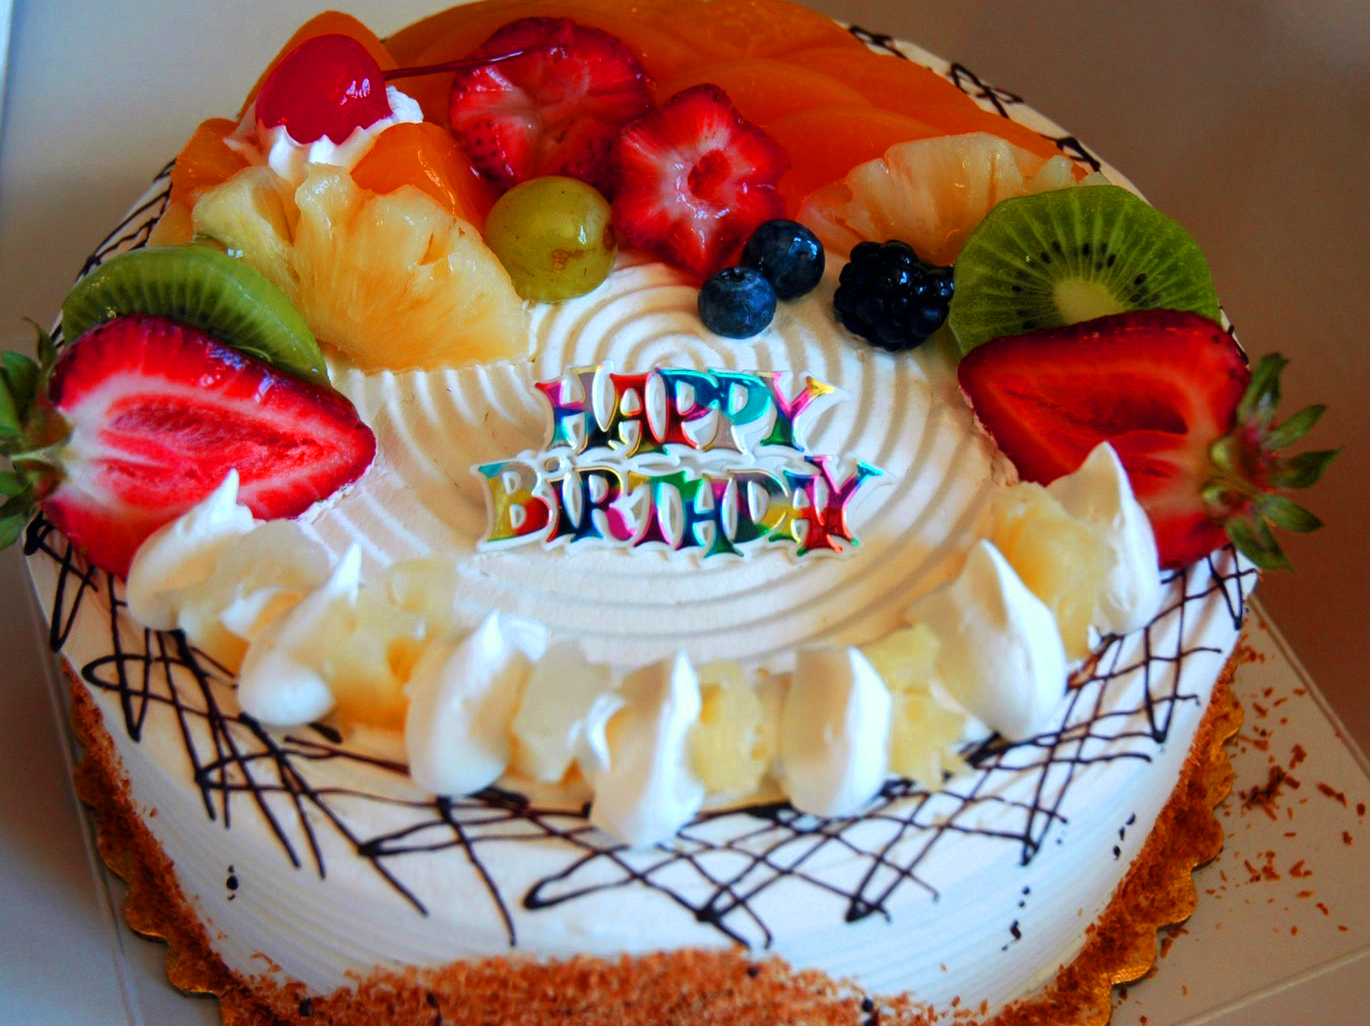 Birthday Cake Pic Download 271 Birthday Cake Images With Name For You Friends Download Here